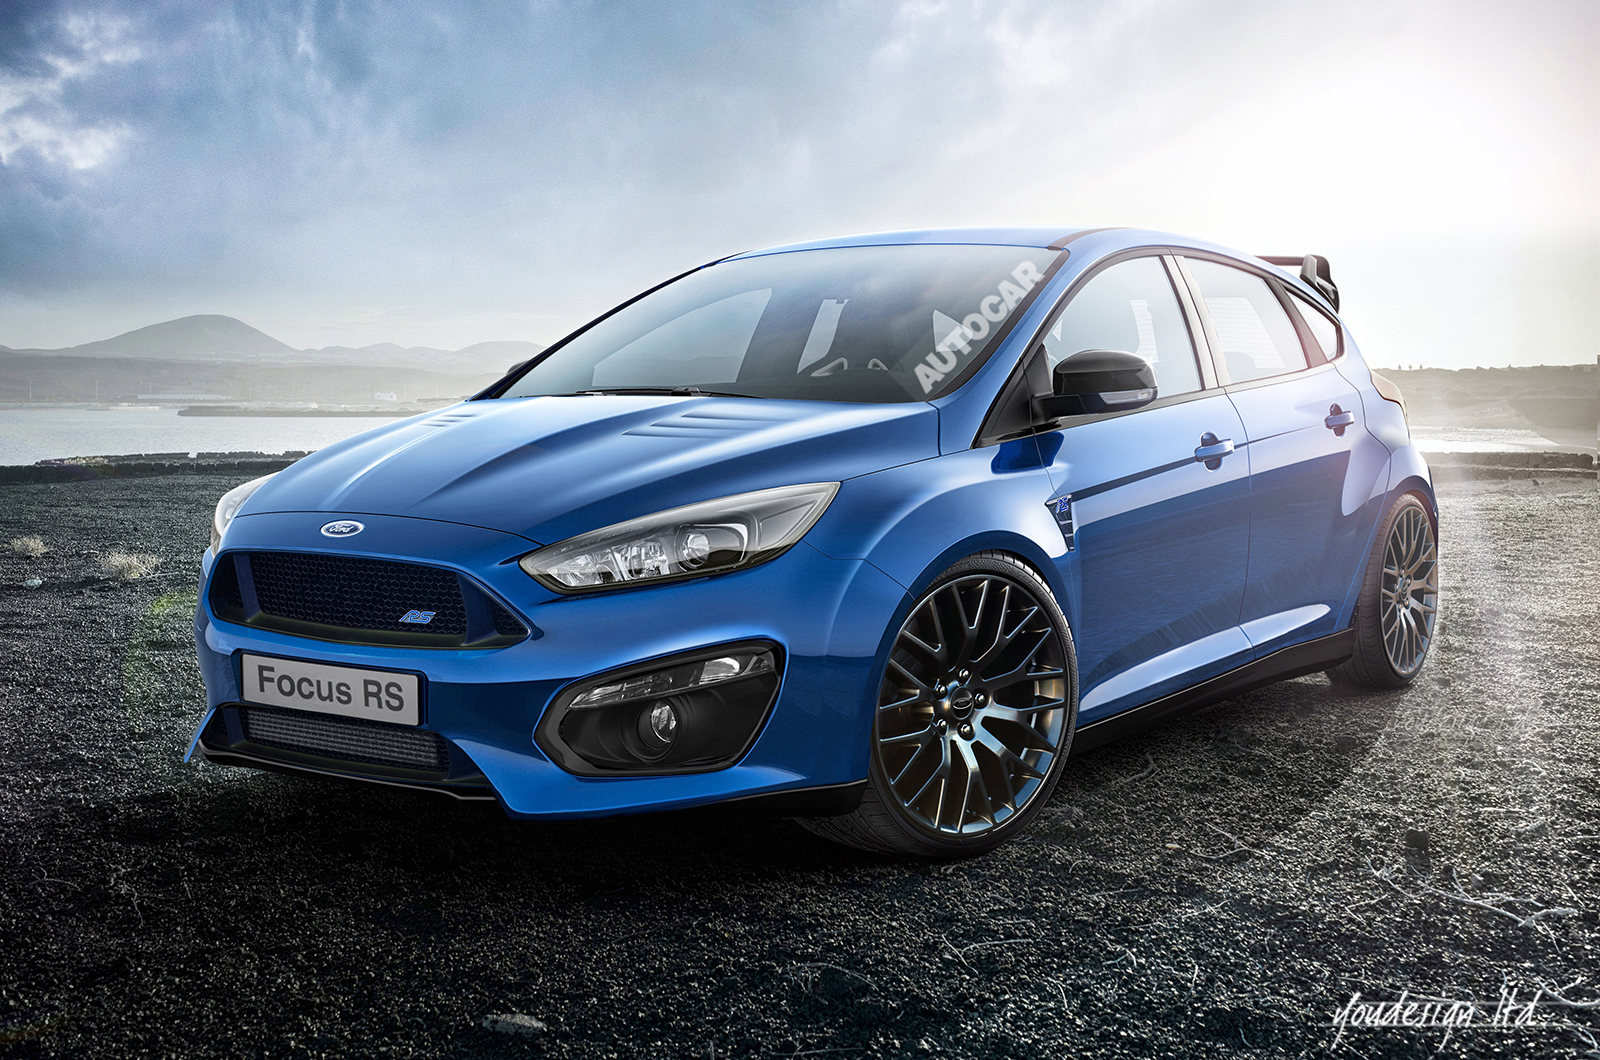 rendering 2017 ford focus rs front photo blue color size 1600 x 1060 nr 2 3. Black Bedroom Furniture Sets. Home Design Ideas